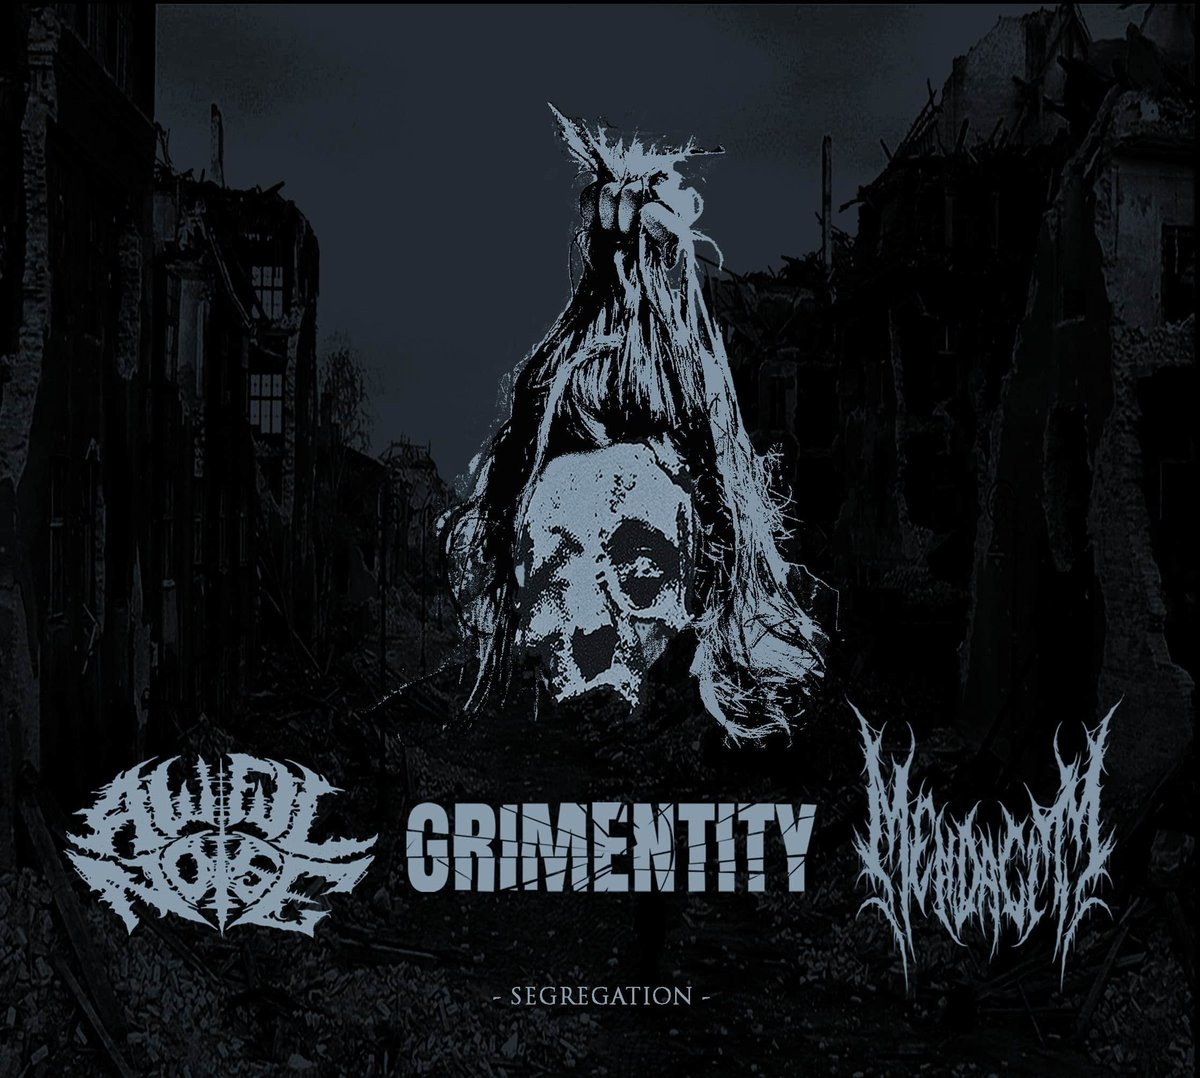 Our covid 19 split has been unveiled! AN with Mendacity(Canada) and Grimentity(Belarus). Coming out on CD and tape through Immaculate Defecation and Grindhead Records #grindcore #brutaldeathmetal #deathgrind #slam #powerviolencepic.twitter.com/8ecCPr13Jr